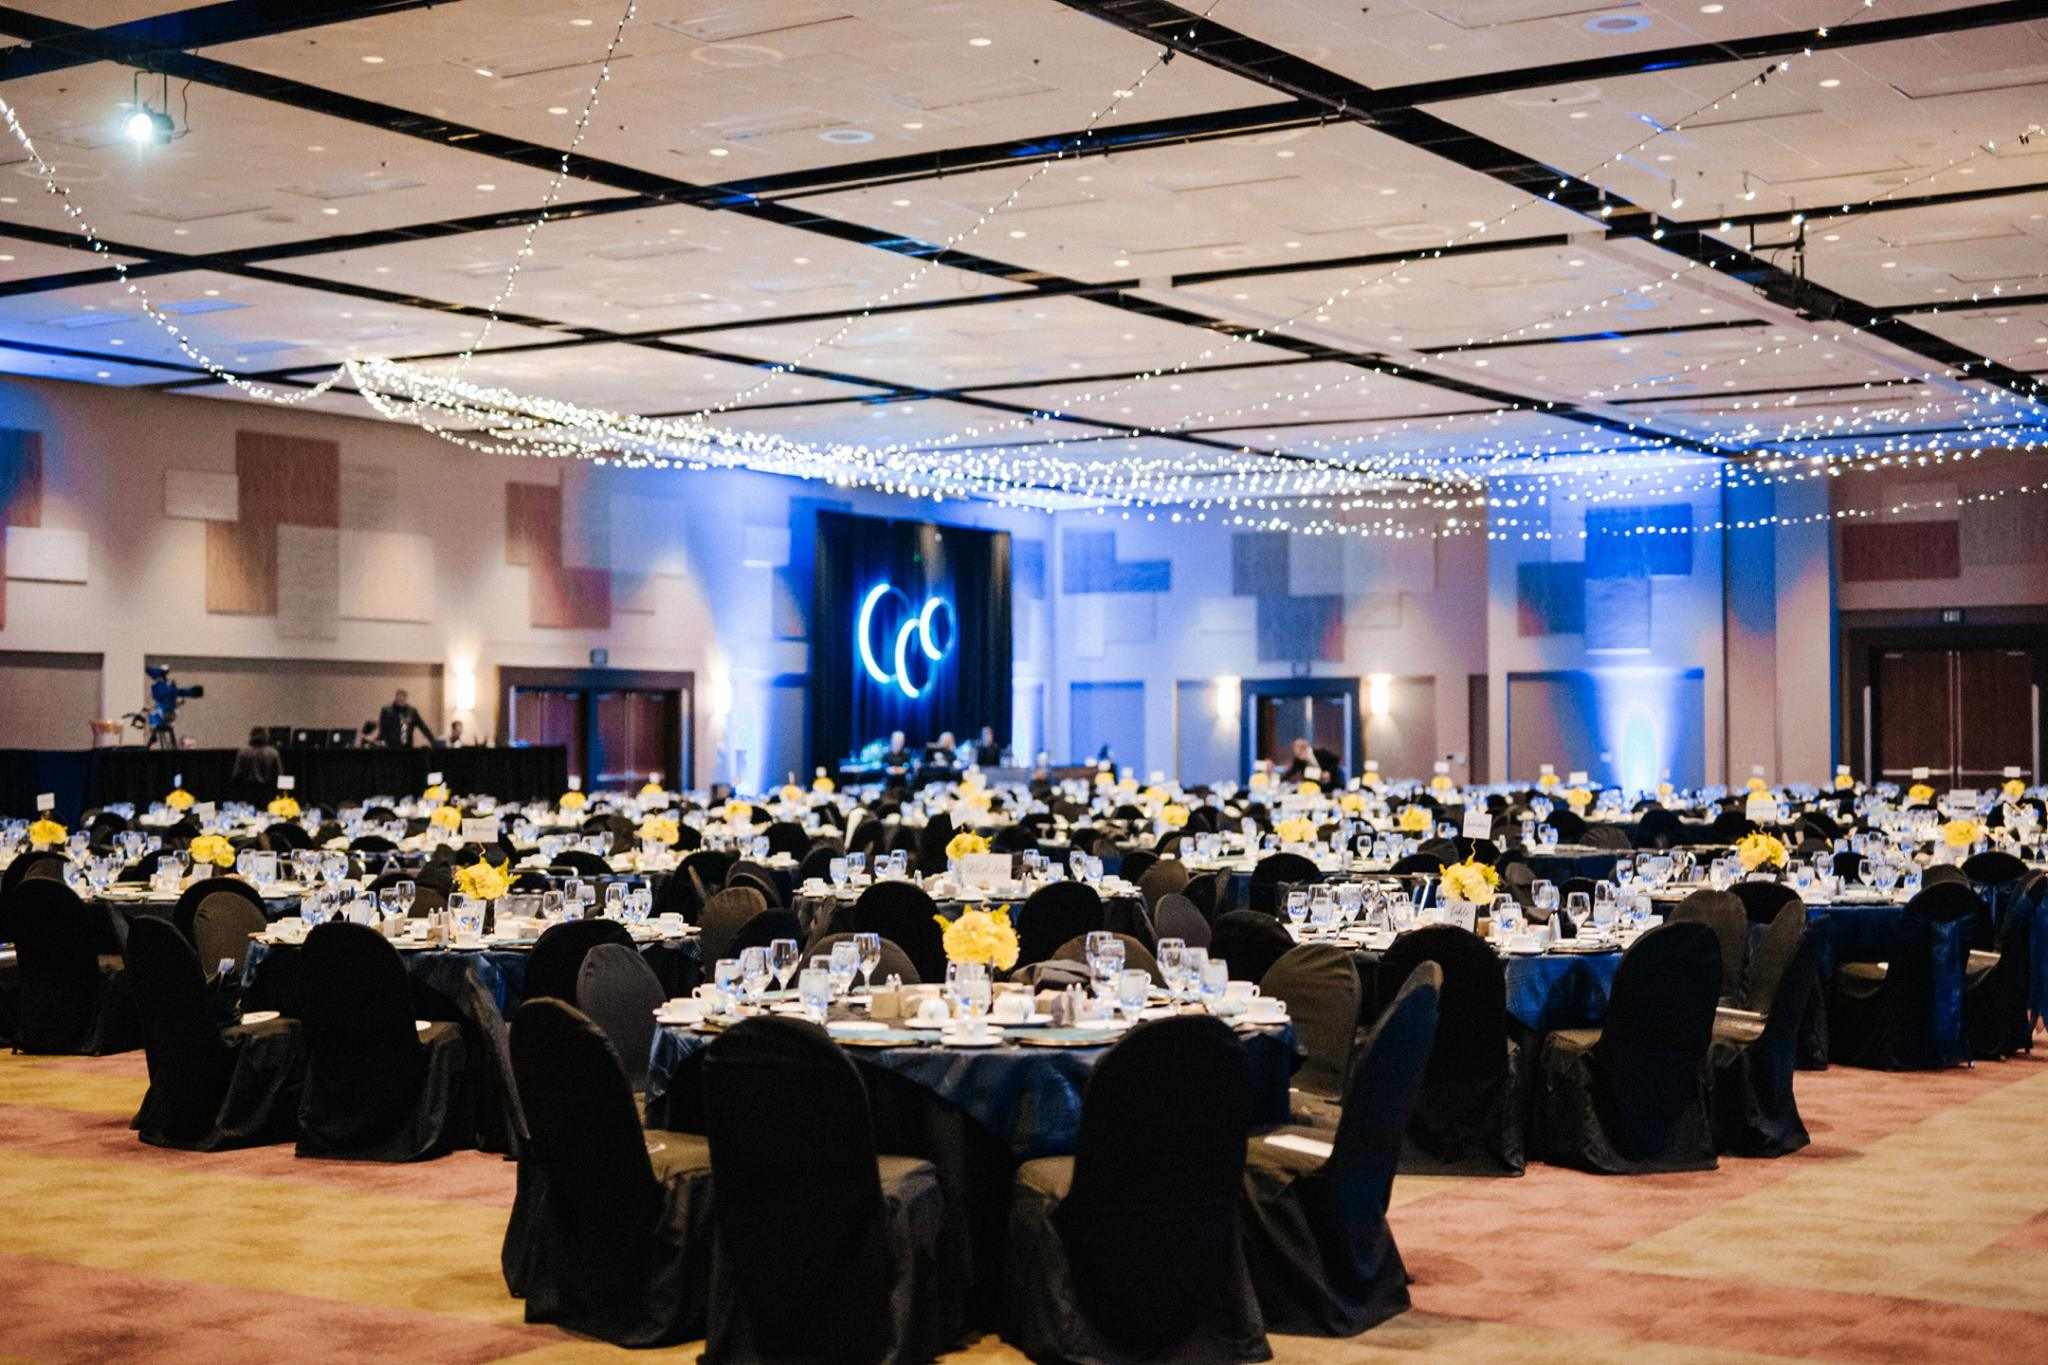 Photo of the beautiful setting of the FUNDSY Gala